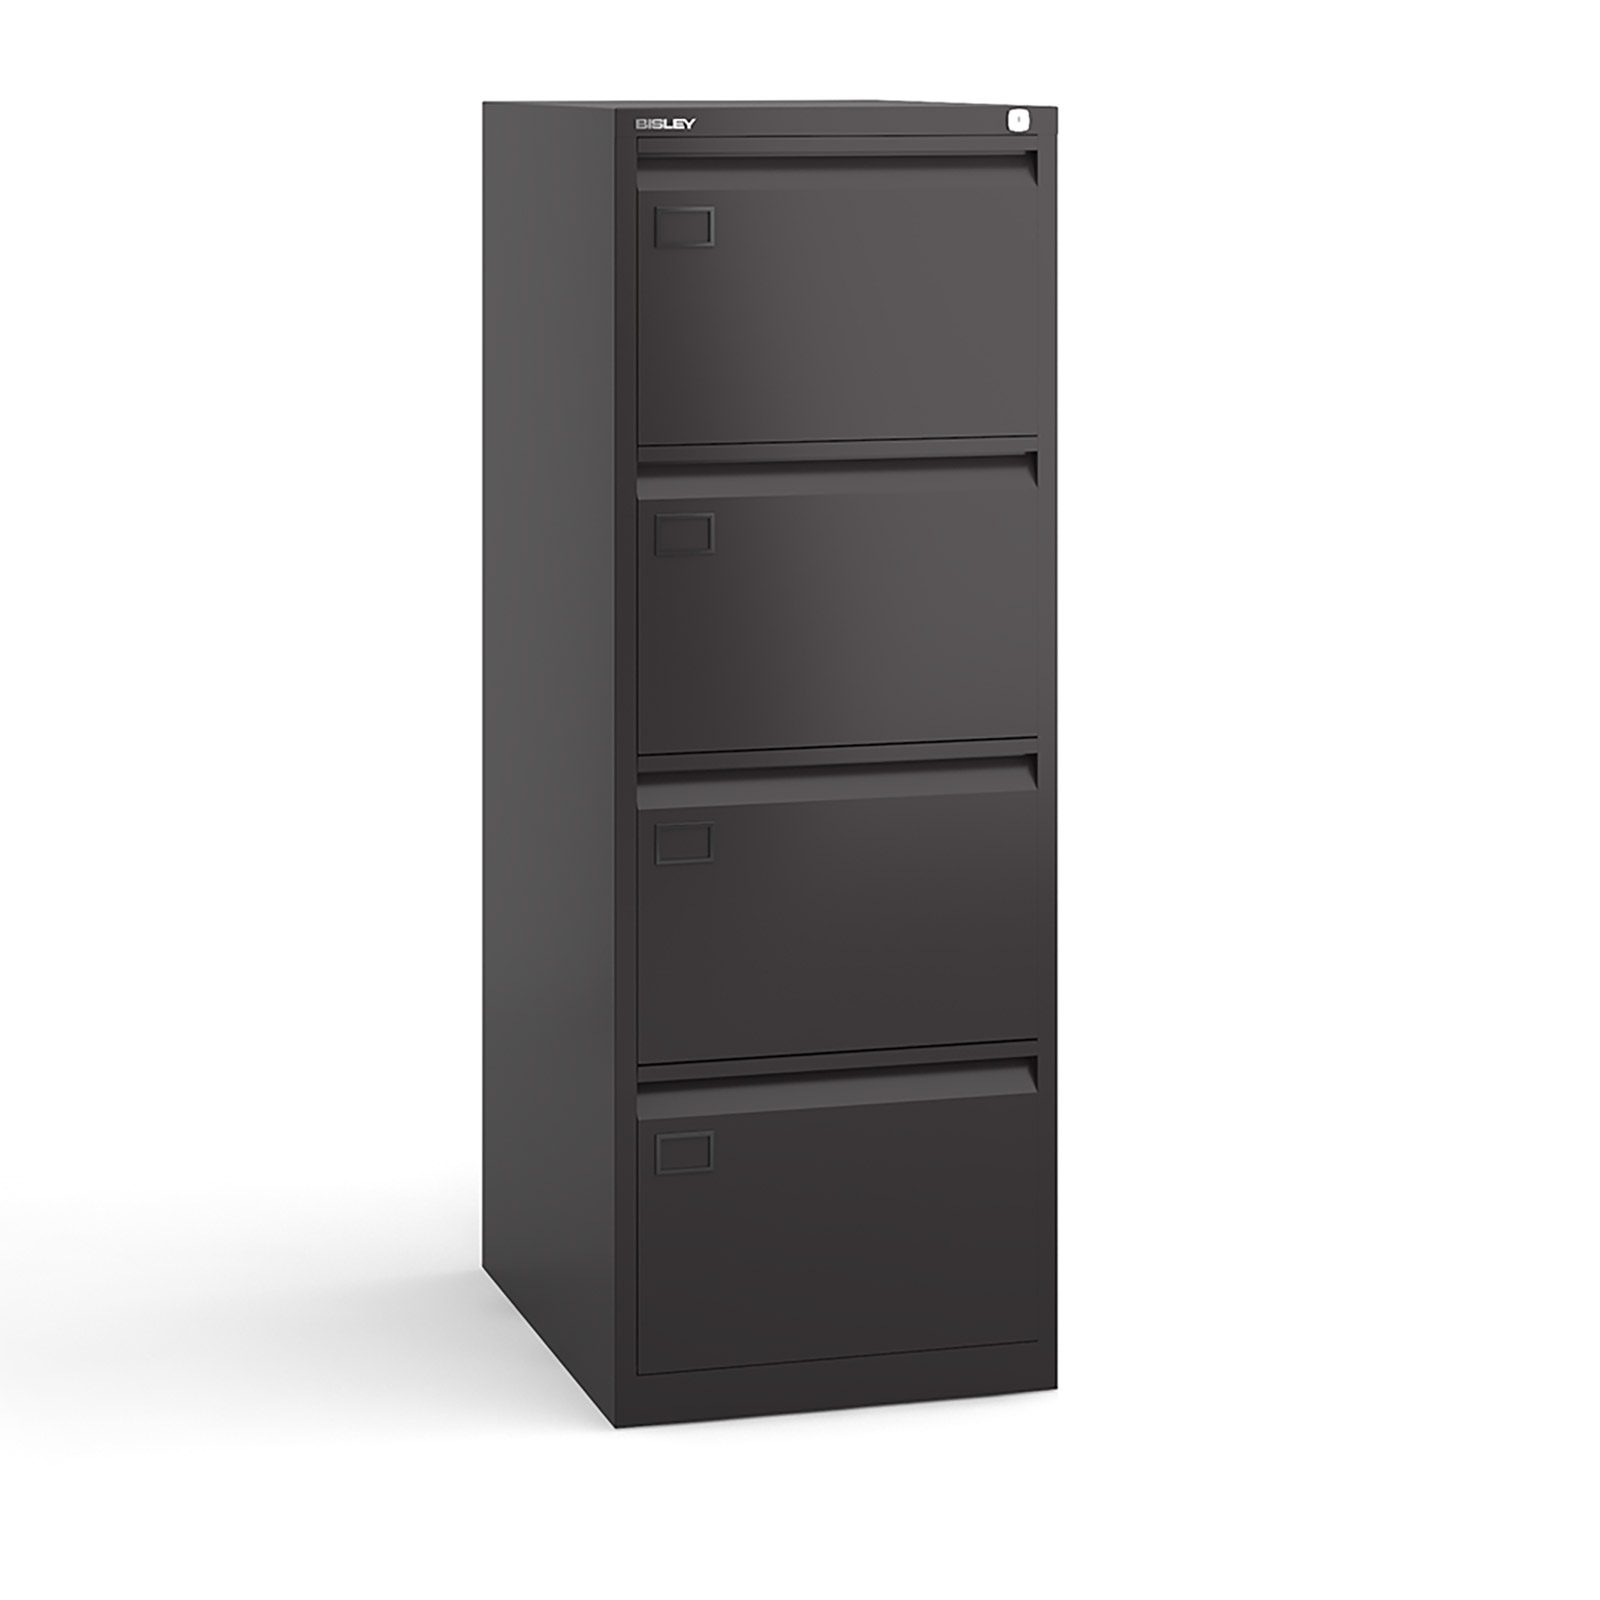 4 drawer executive filing cabinet Black